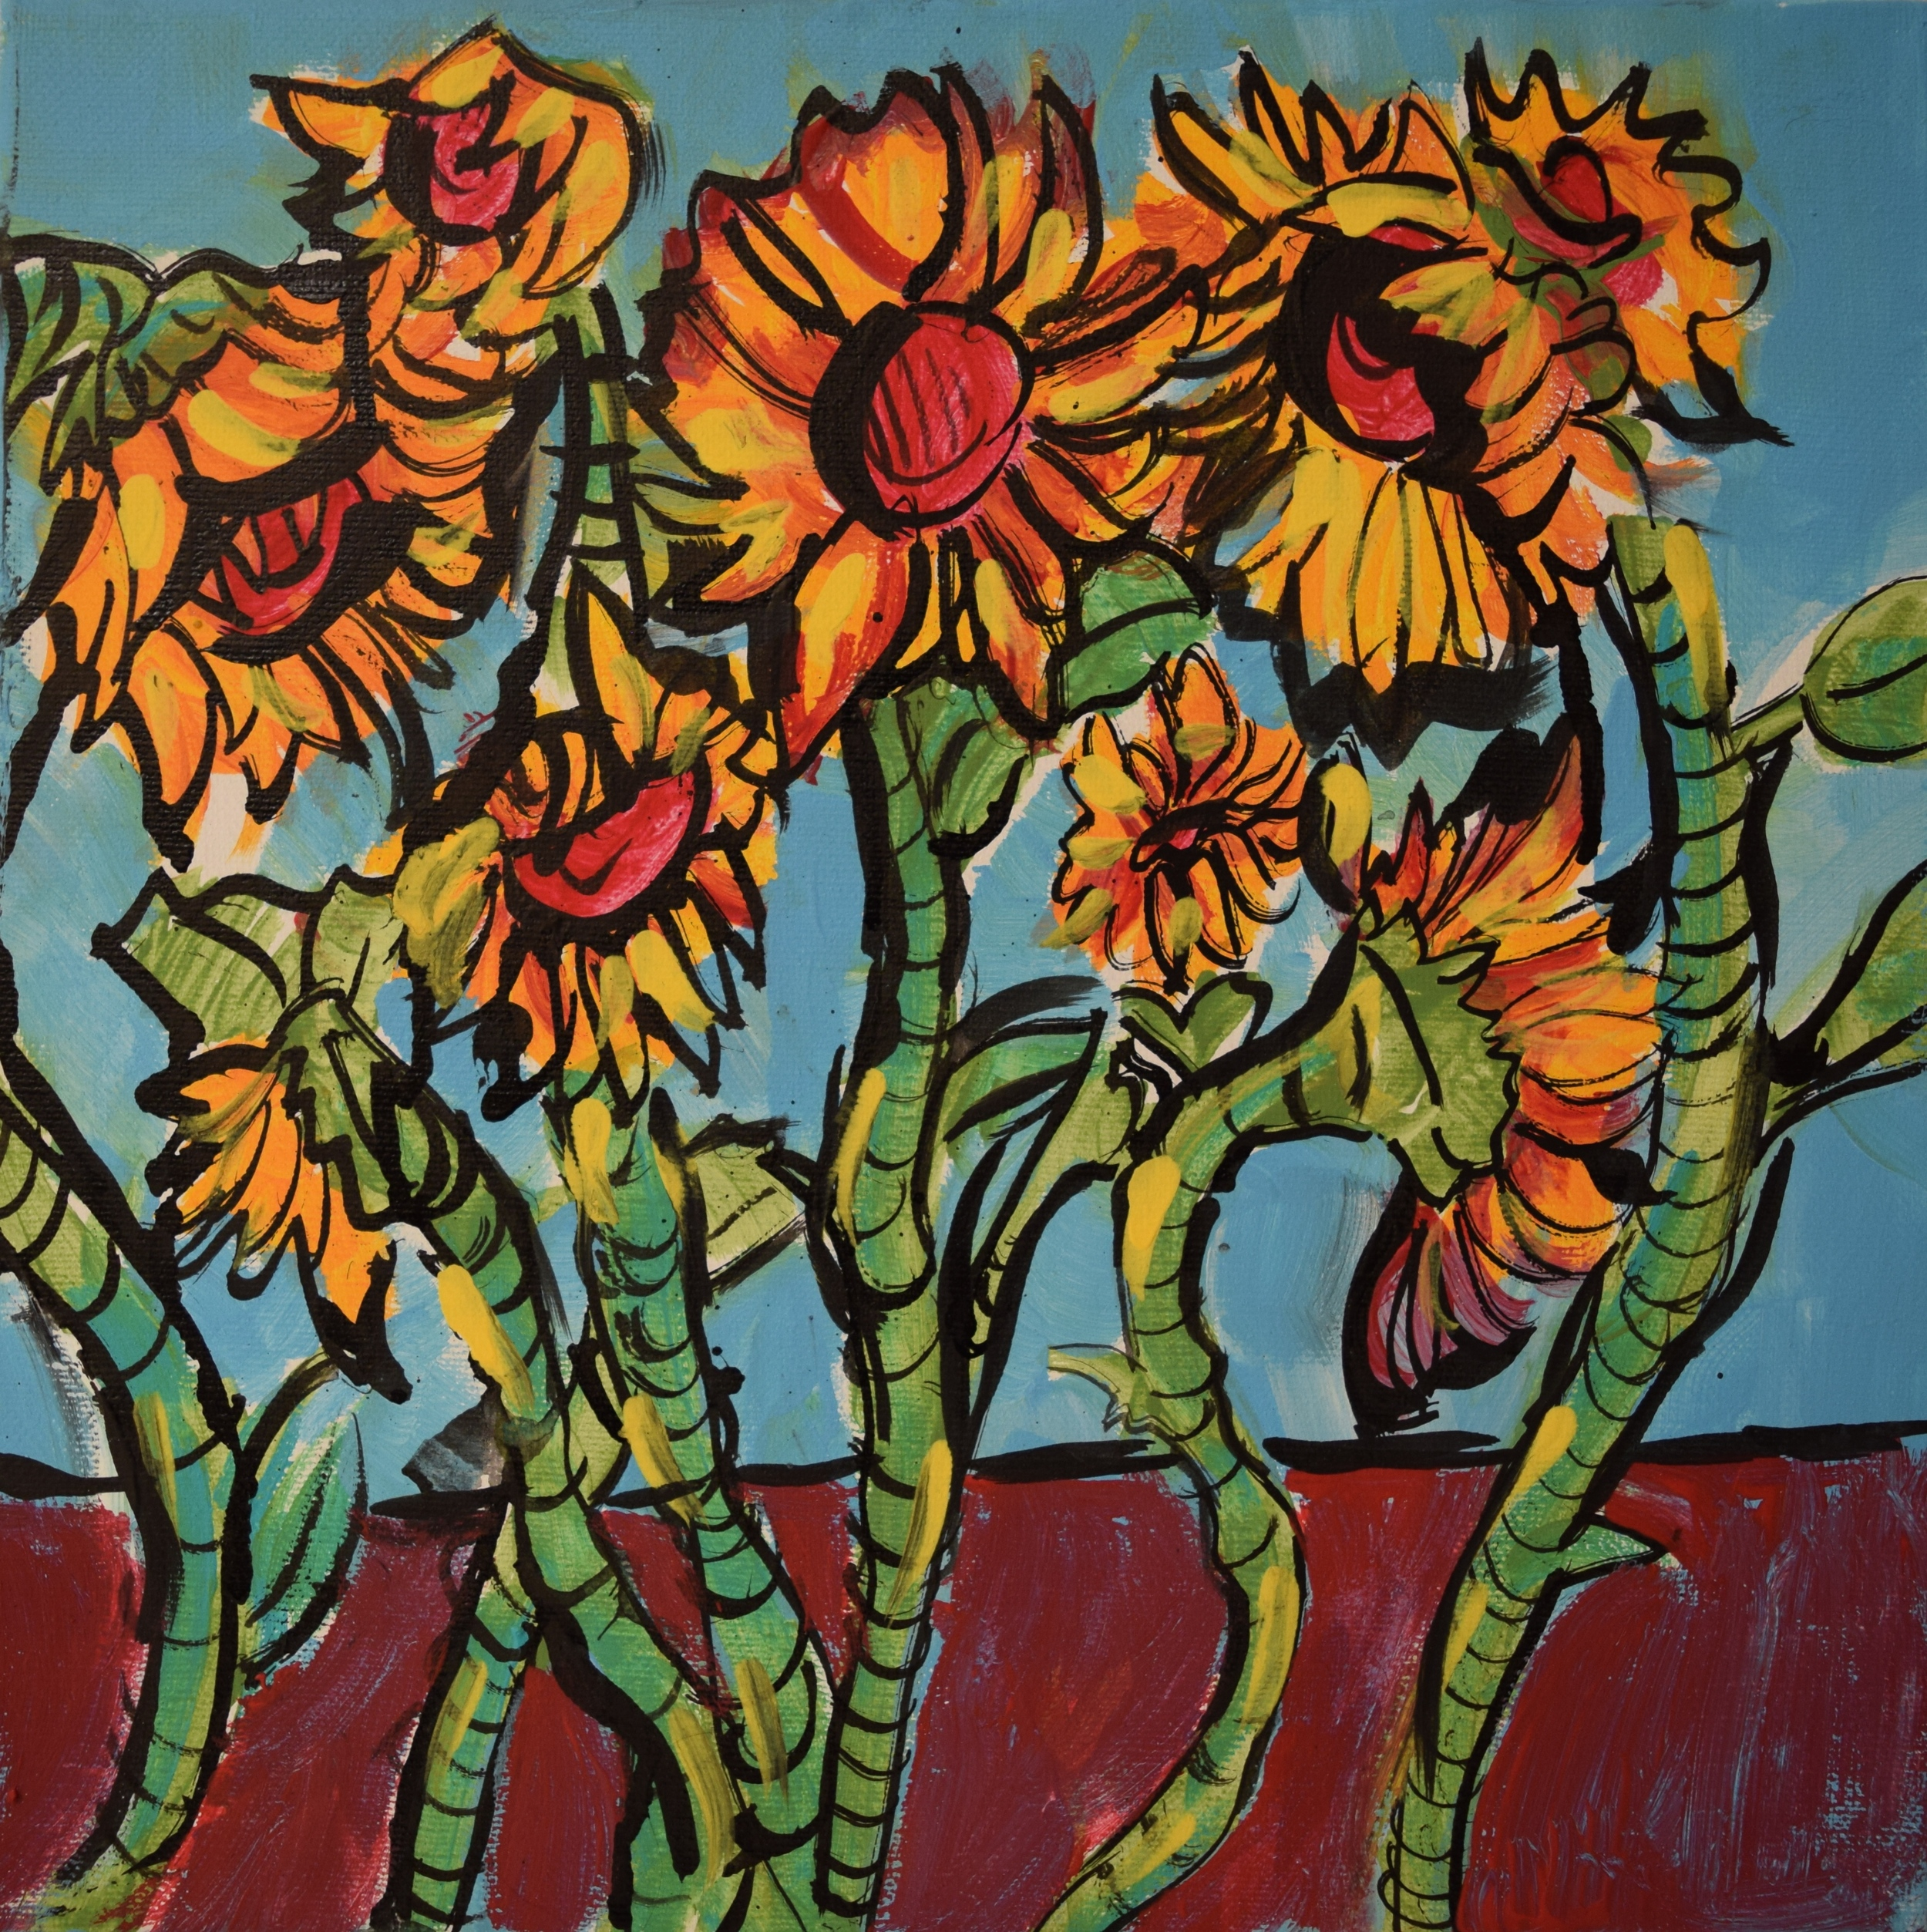 "Sunflowers/ Acrylic on Canvas/ 12x12""/ June 2015/ (SOLD)"